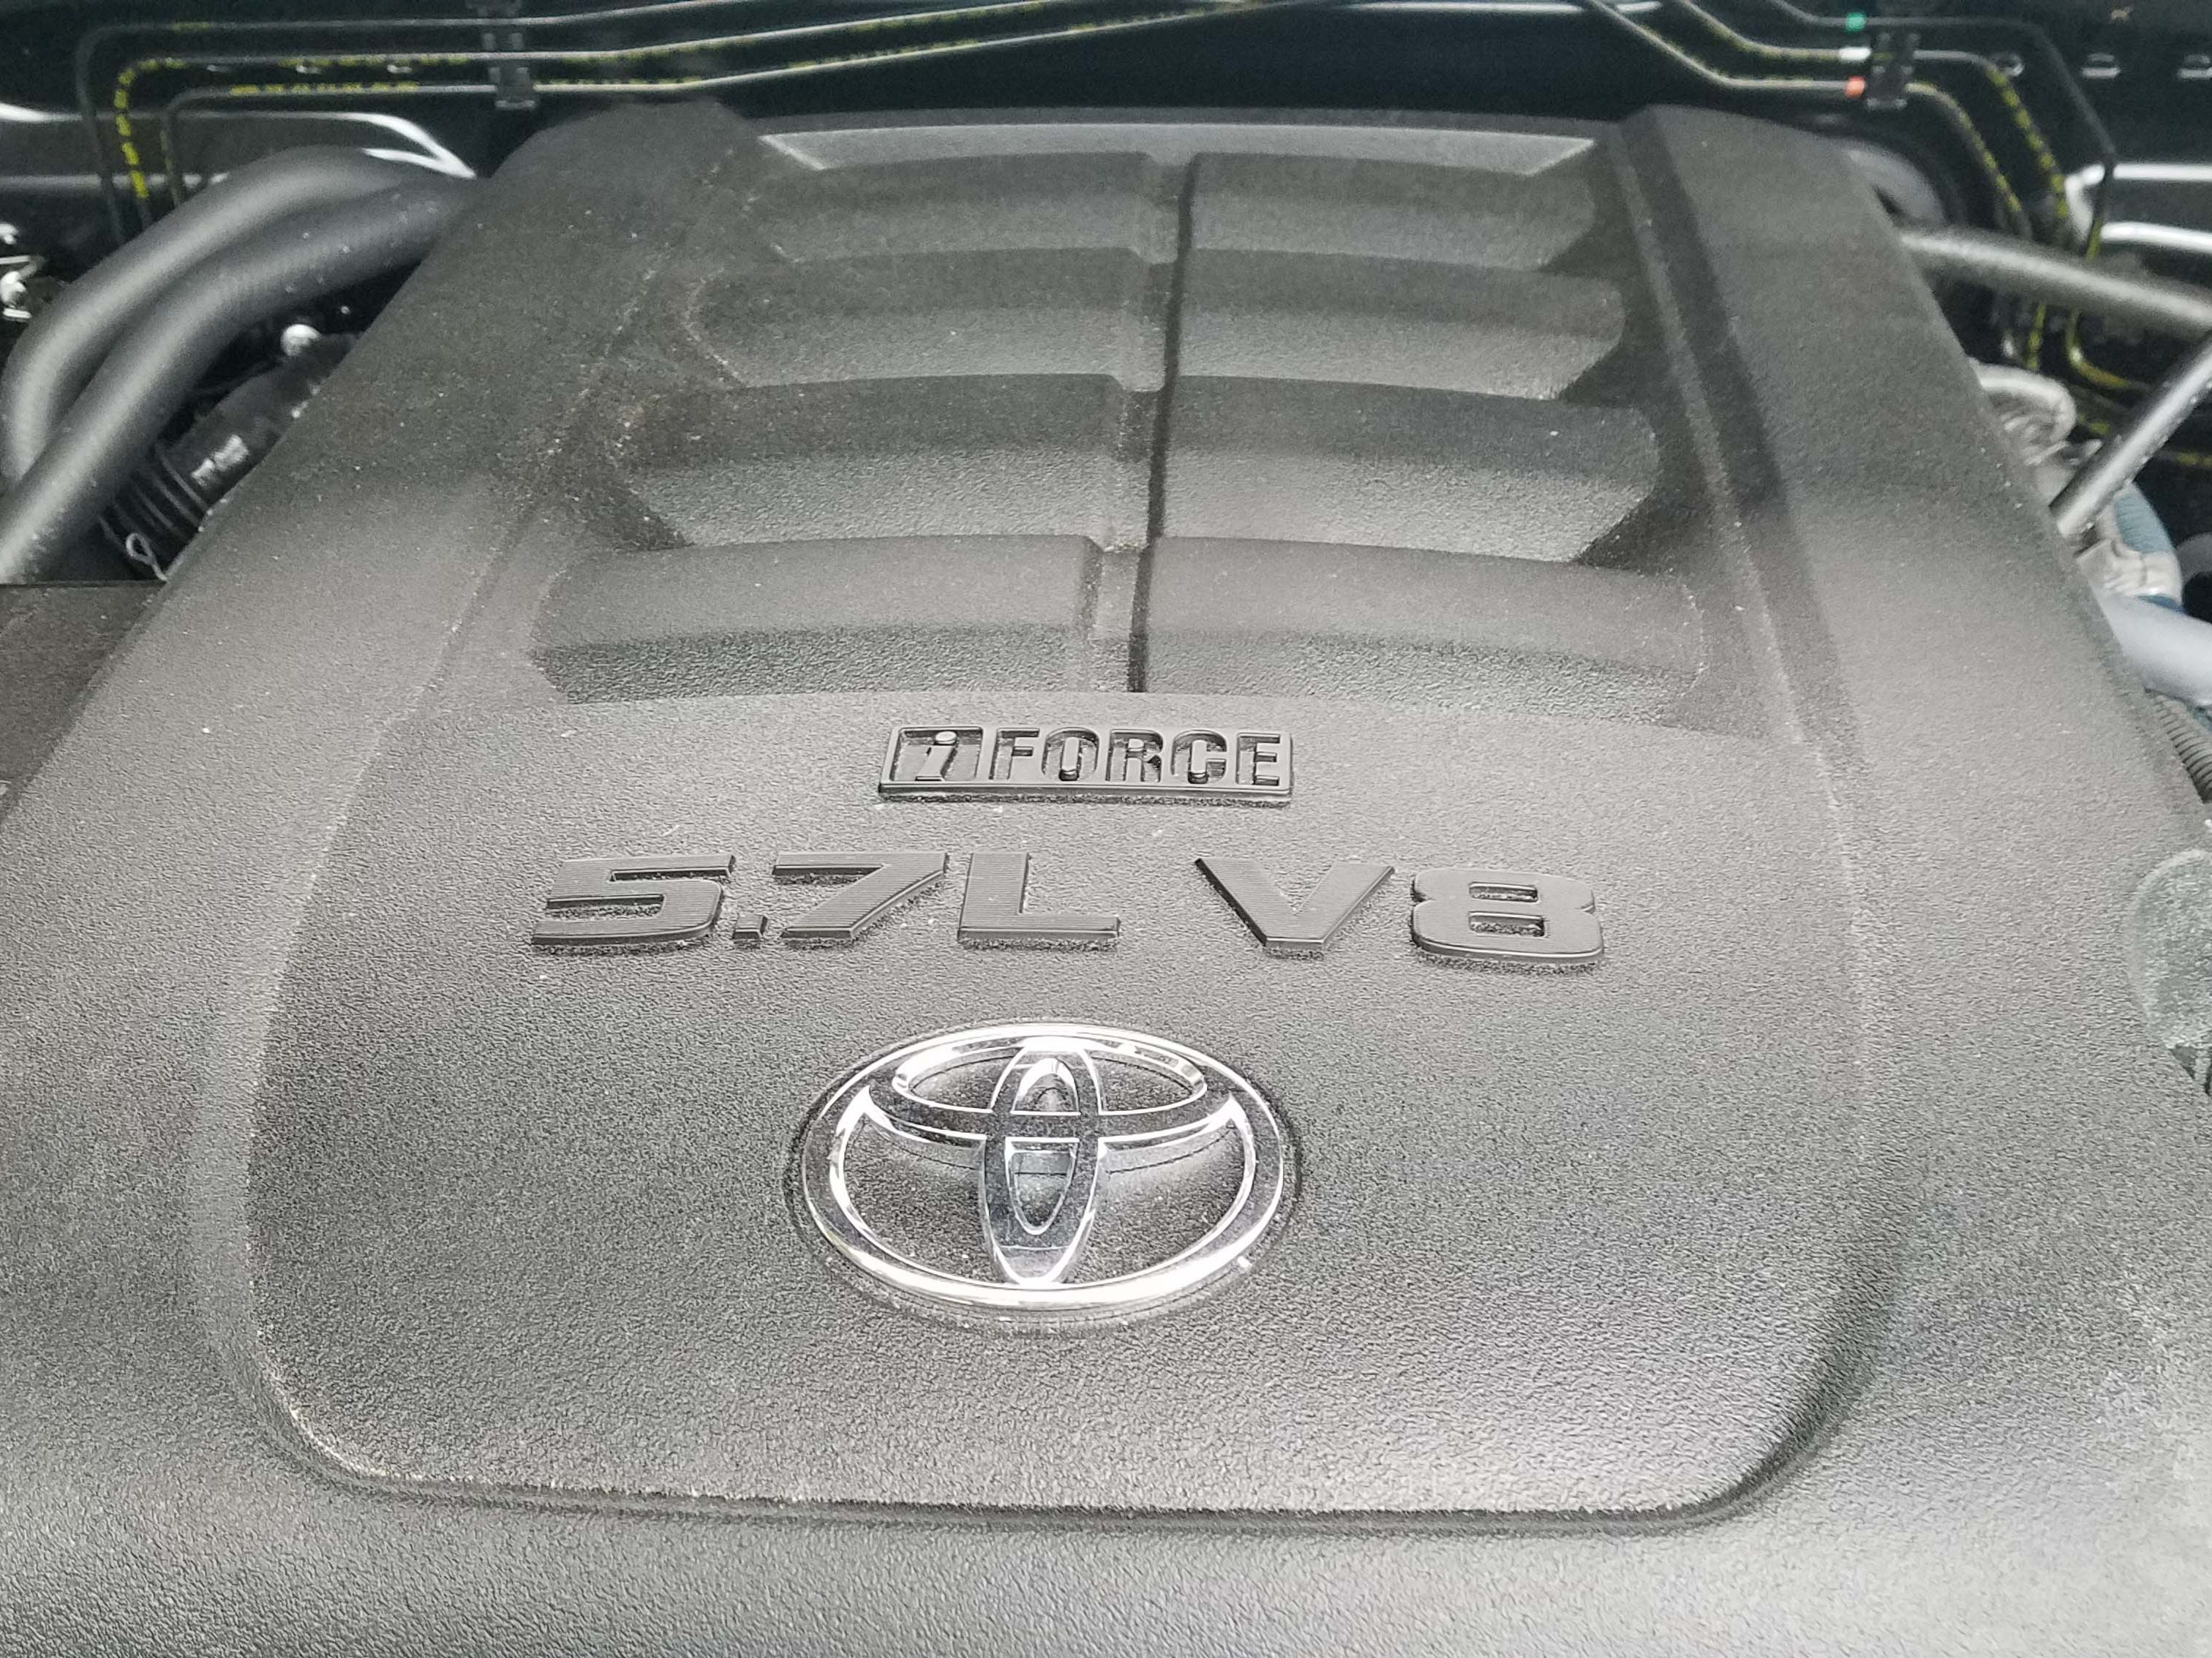 The top-of-the-line, 5.7-liter V-8 in the 2019 Toyota Tundra pumps out 381 horsepower and 401 pound-feet of torque.